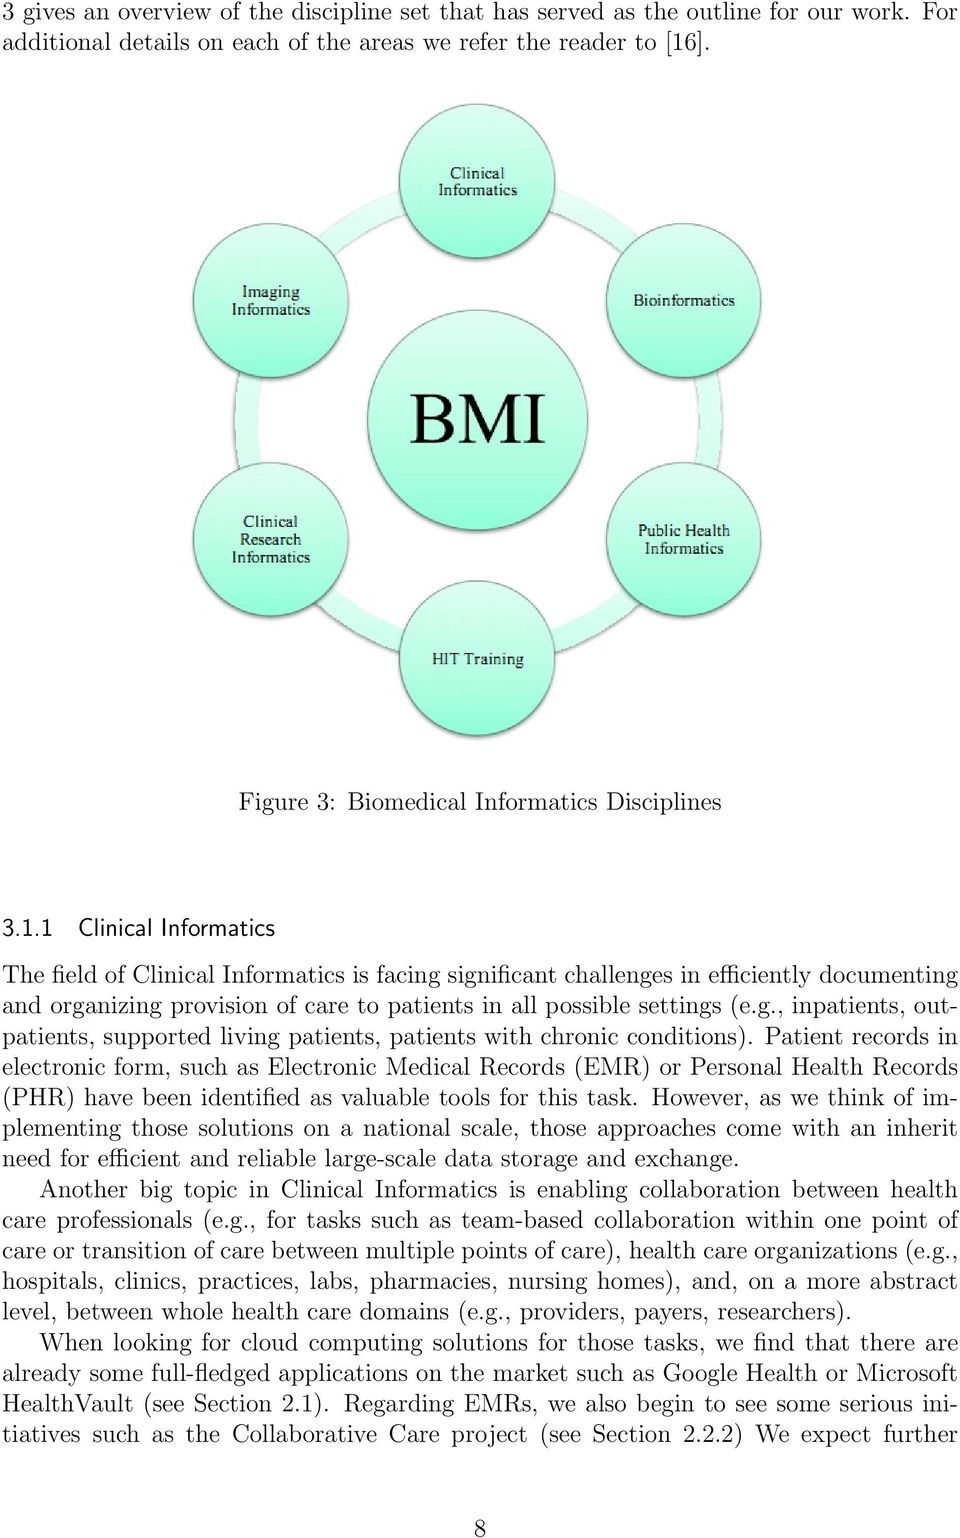 1 Clinical Informatics The field of Clinical Informatics is facing significant challenges in efficiently documenting and organizing provision of care to patients in all possible settings (e.g., inpatients, outpatients, supported living patients, patients with chronic conditions).